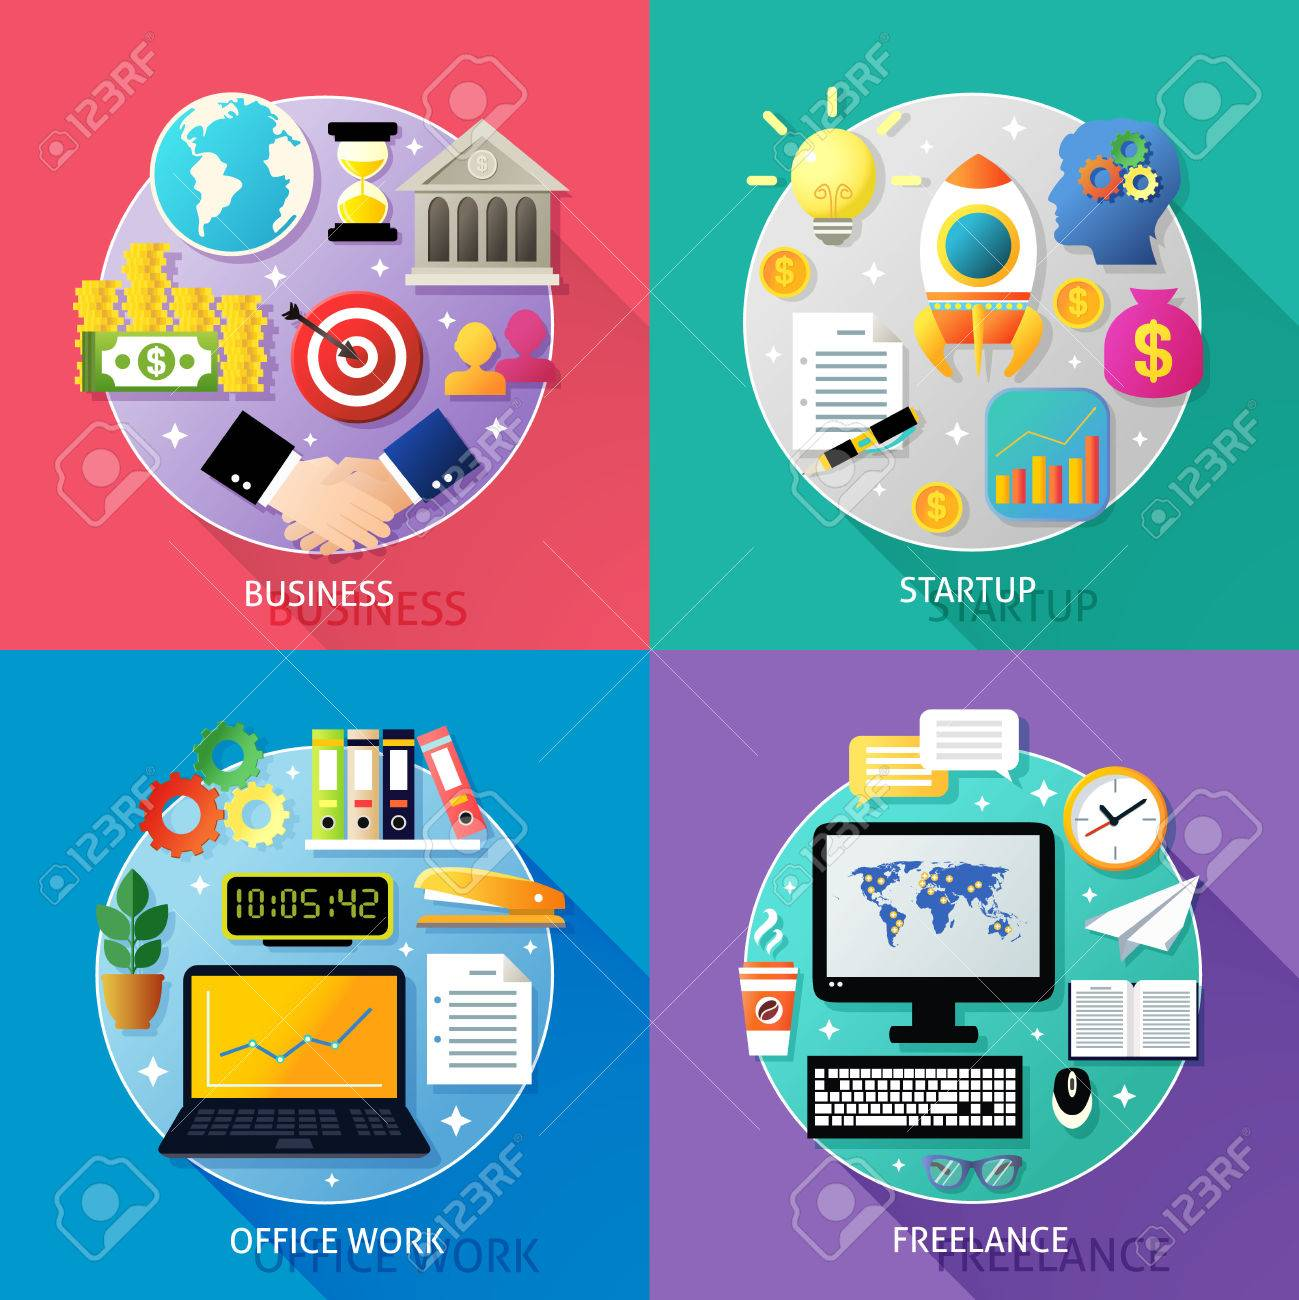 business types concept startup office work lance icons set business types concept startup office work lance icons set isolated vector illustration stock vector 29726711